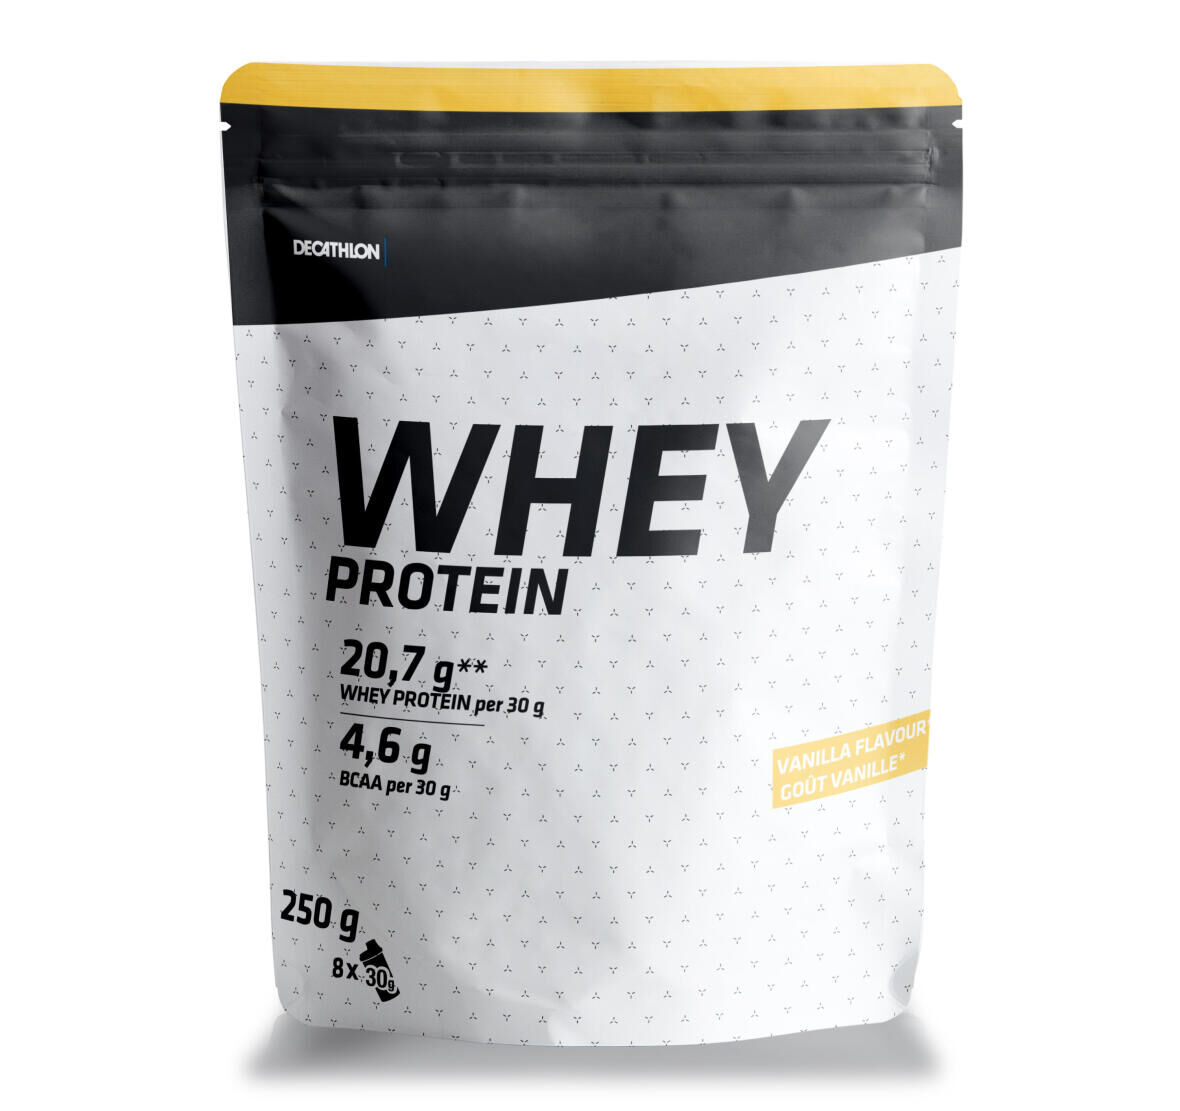 How to choose your protein